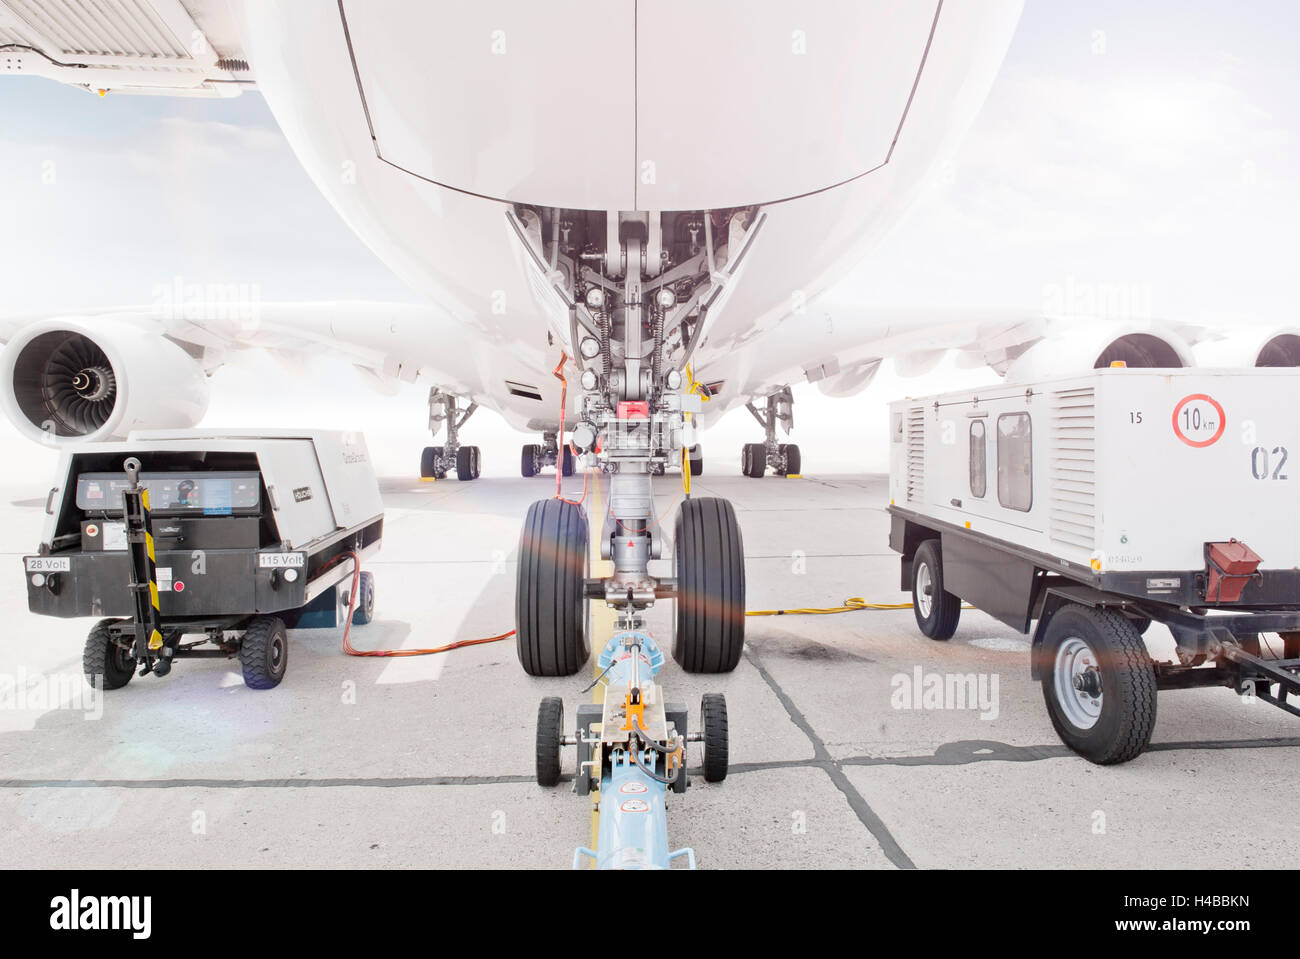 [M], airbus A380, airplane, undercarriage, airport, - Stock Image